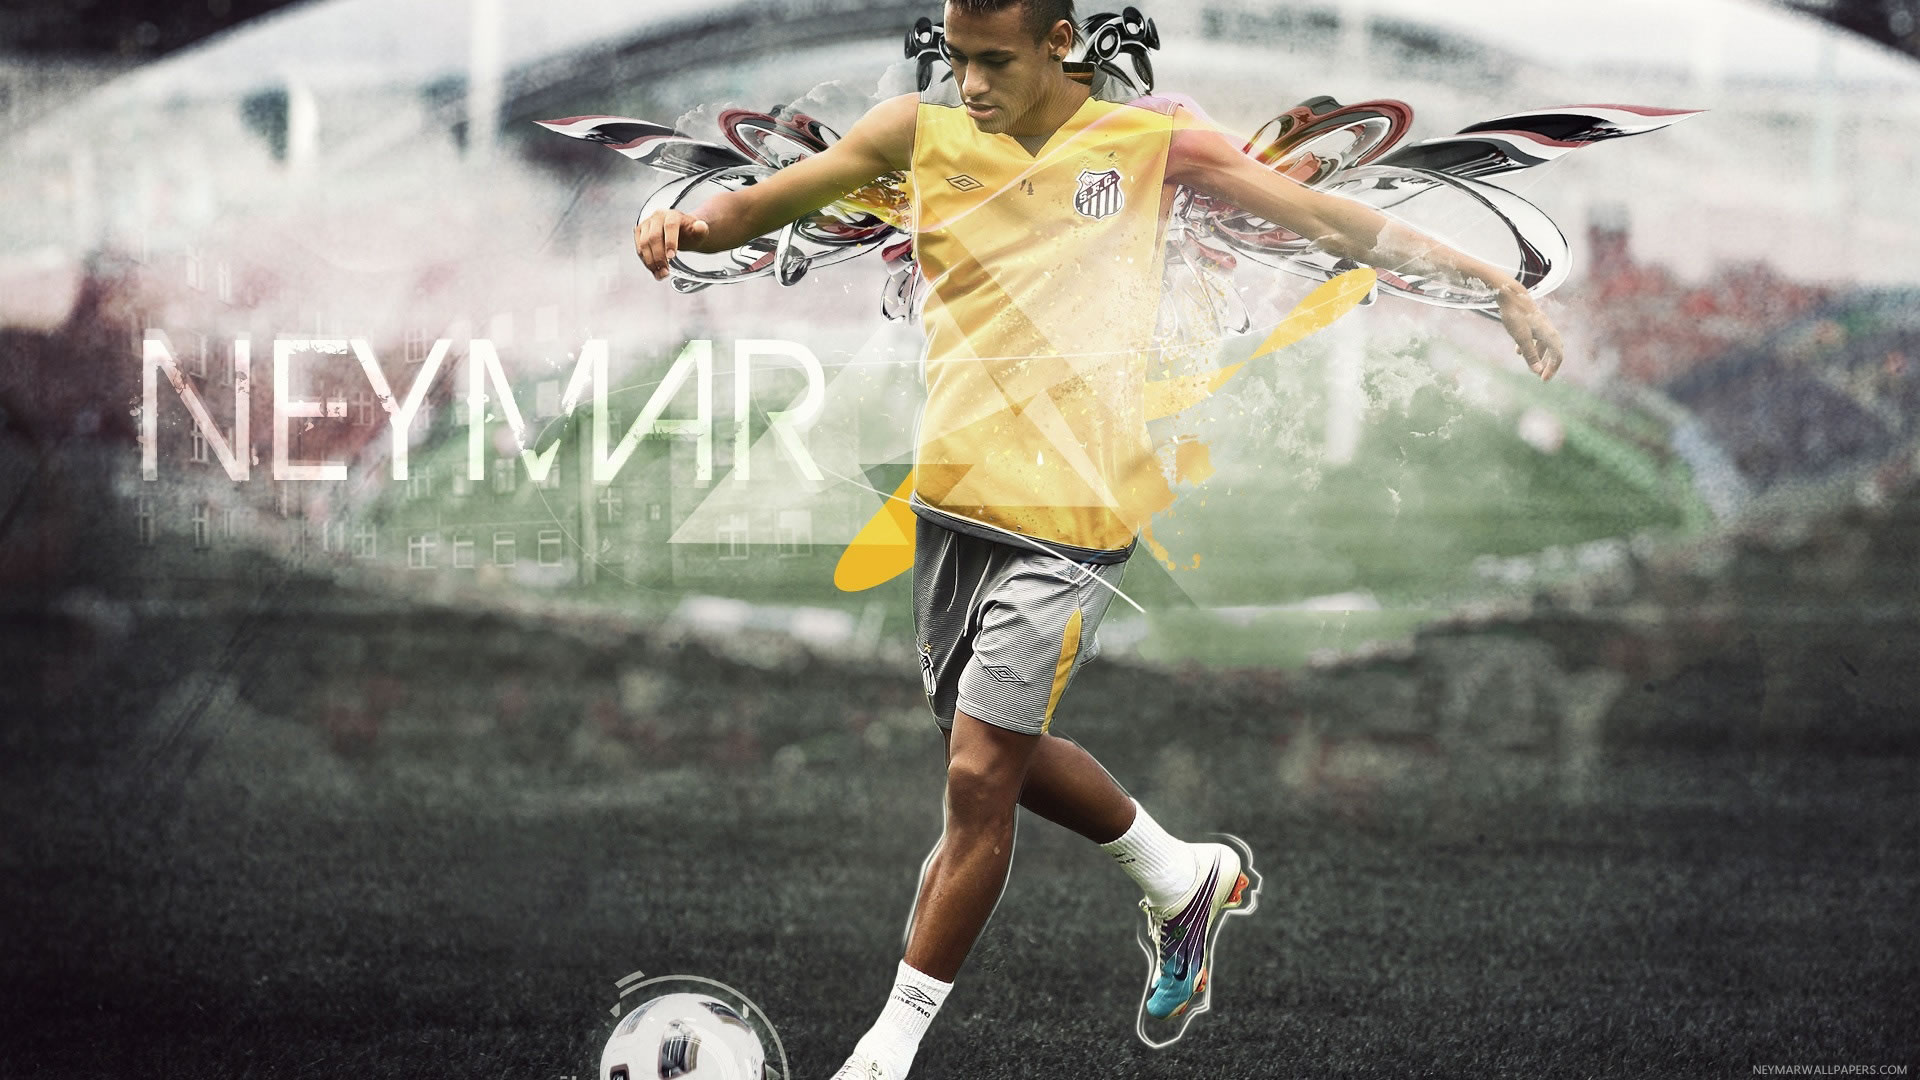 Neymar training wallpaper (3)